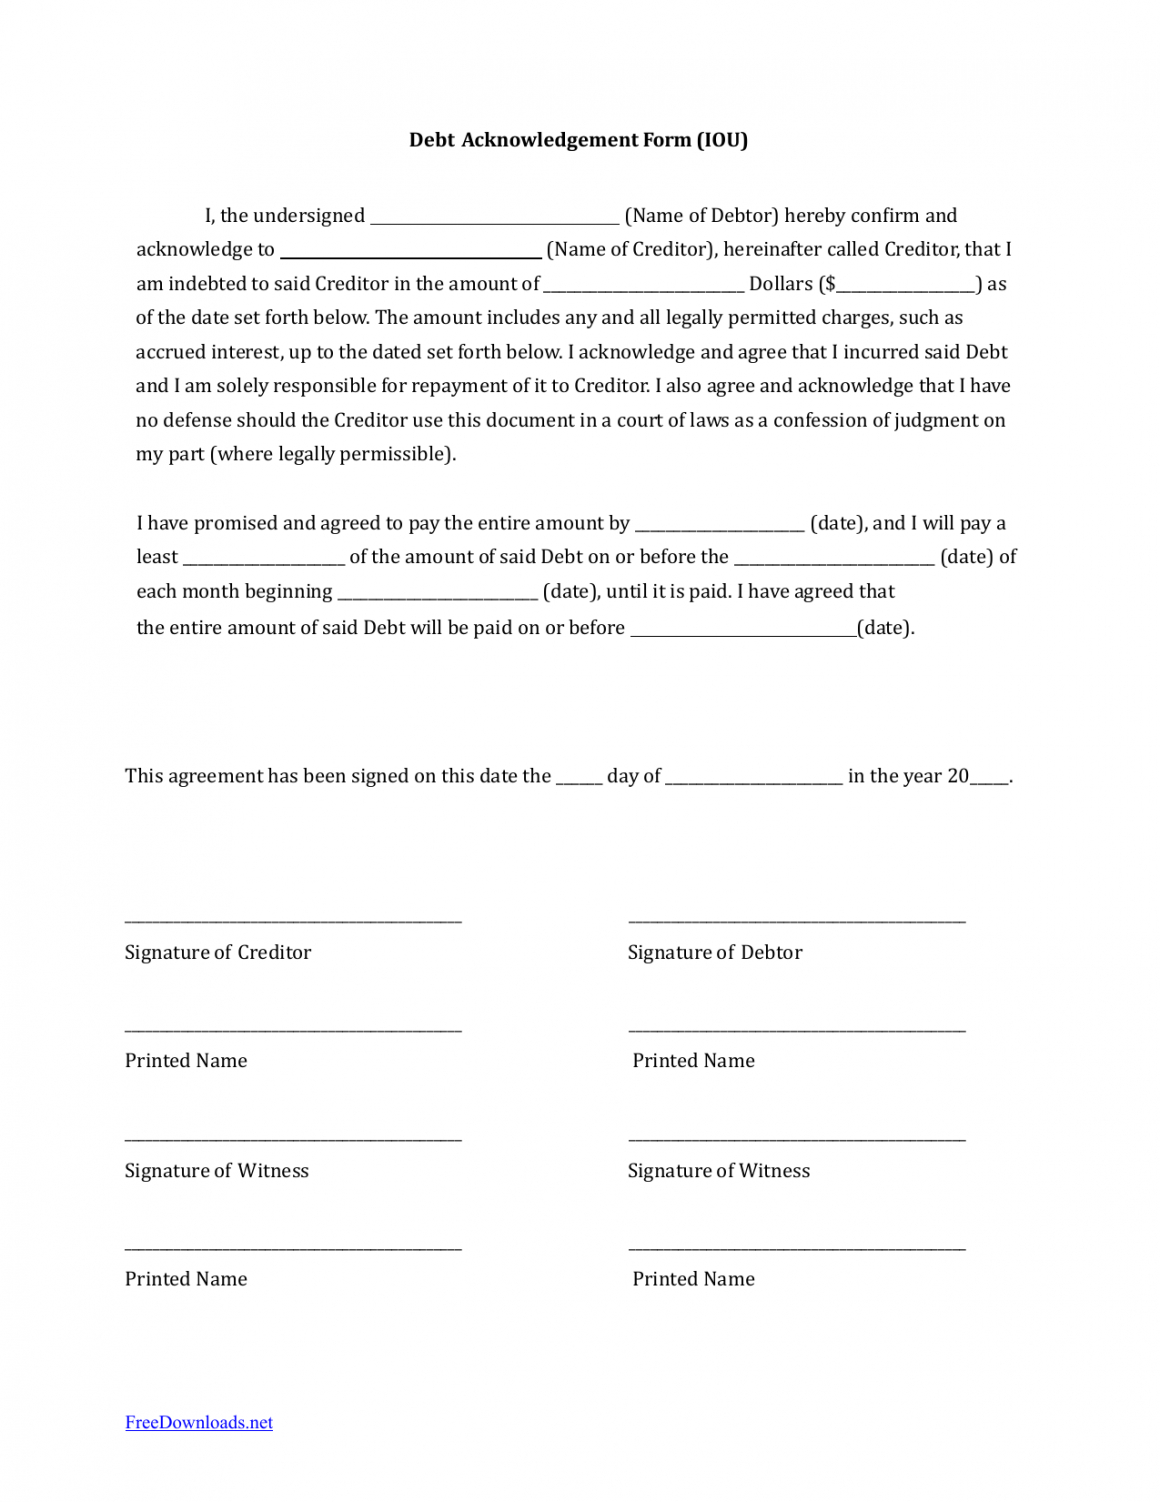 editable download iou i owe you debt acknowledgment form  pdf money owed agreement template word